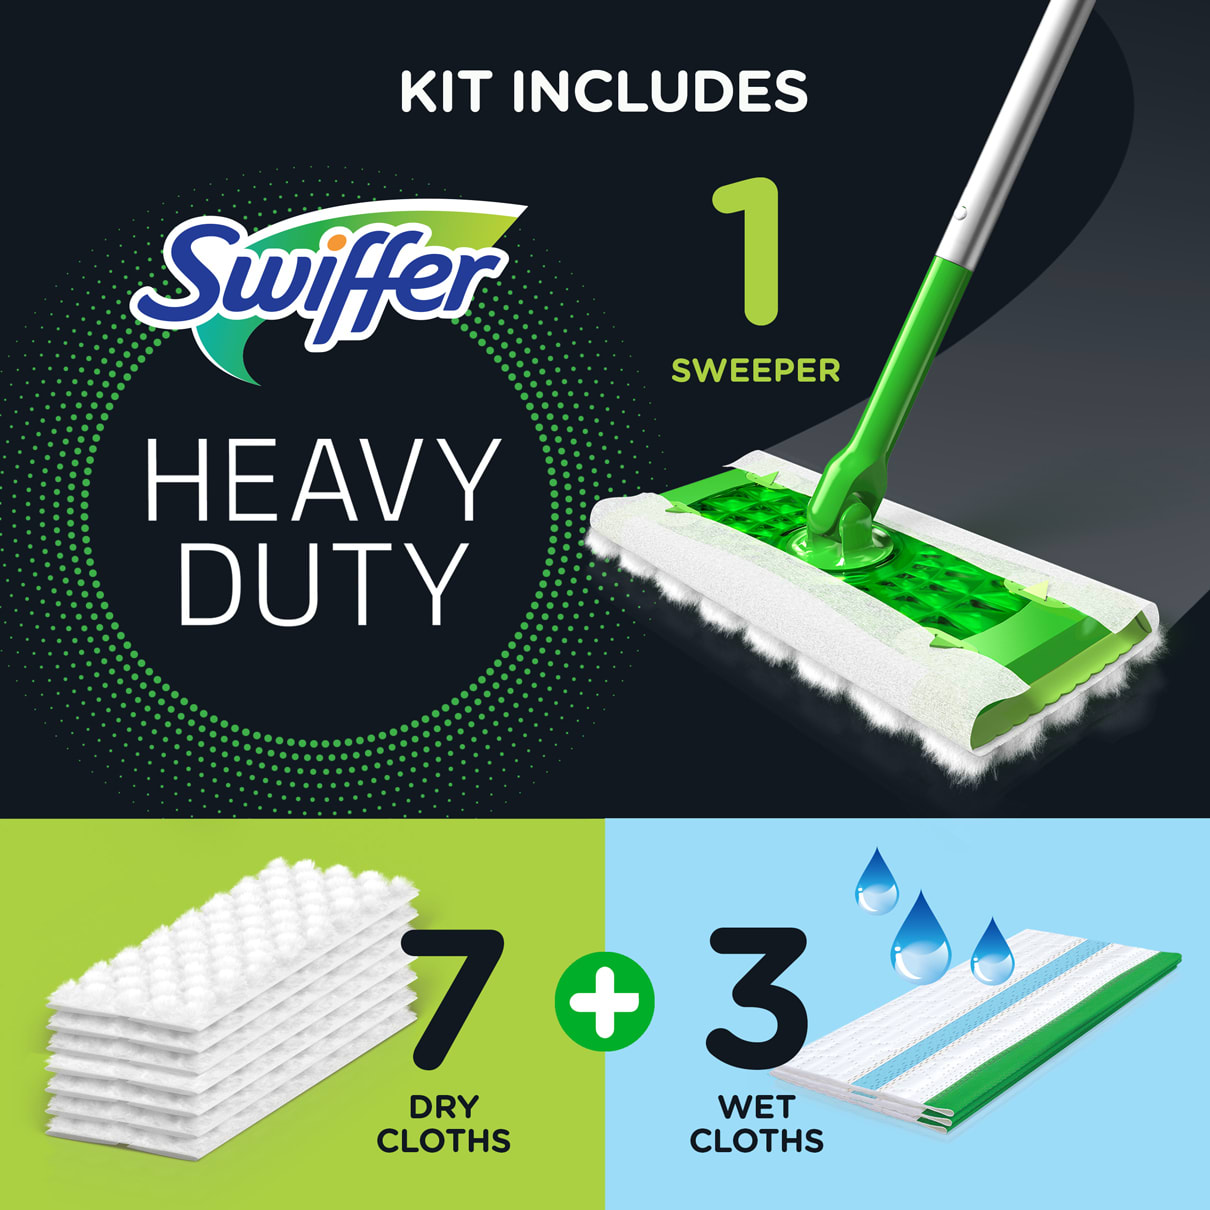 Swiffer Sweeper Heavy Duty